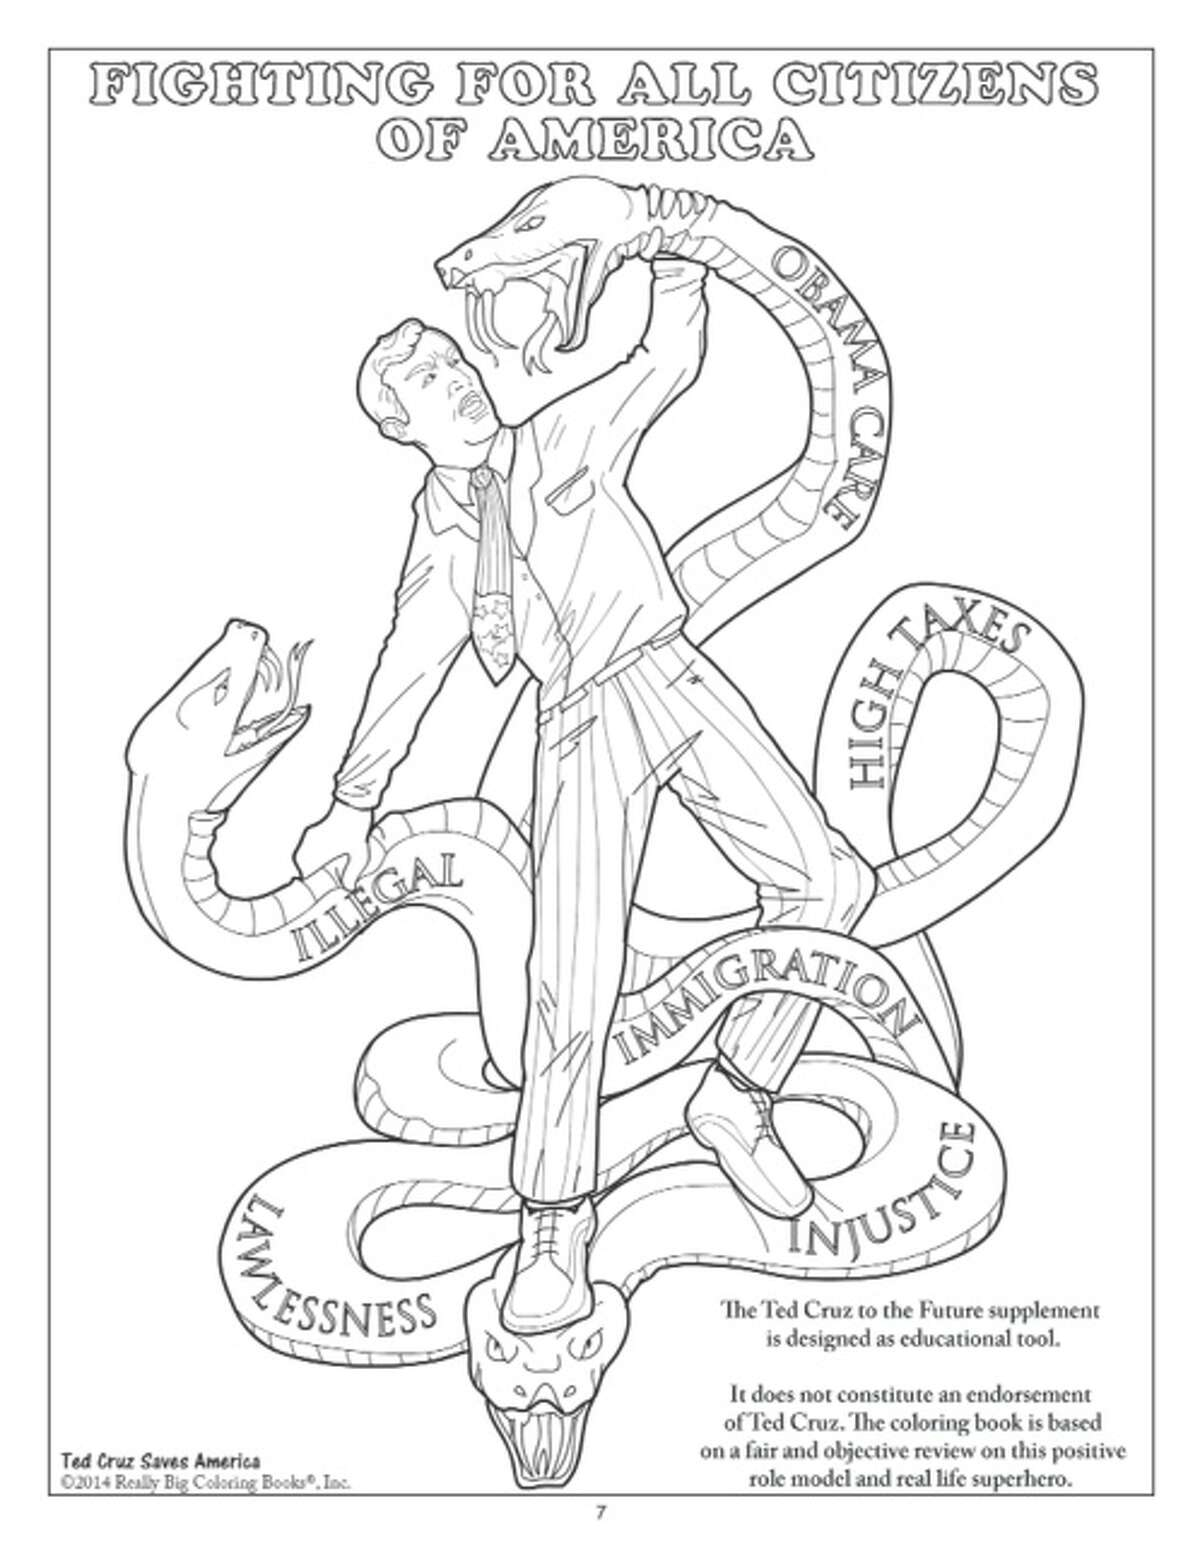 A new coloring book depicts U.S. Sen. Ted Cruz, R-Texas, as a superhero riding on an eagle while carrying a rifle and wrangling with the